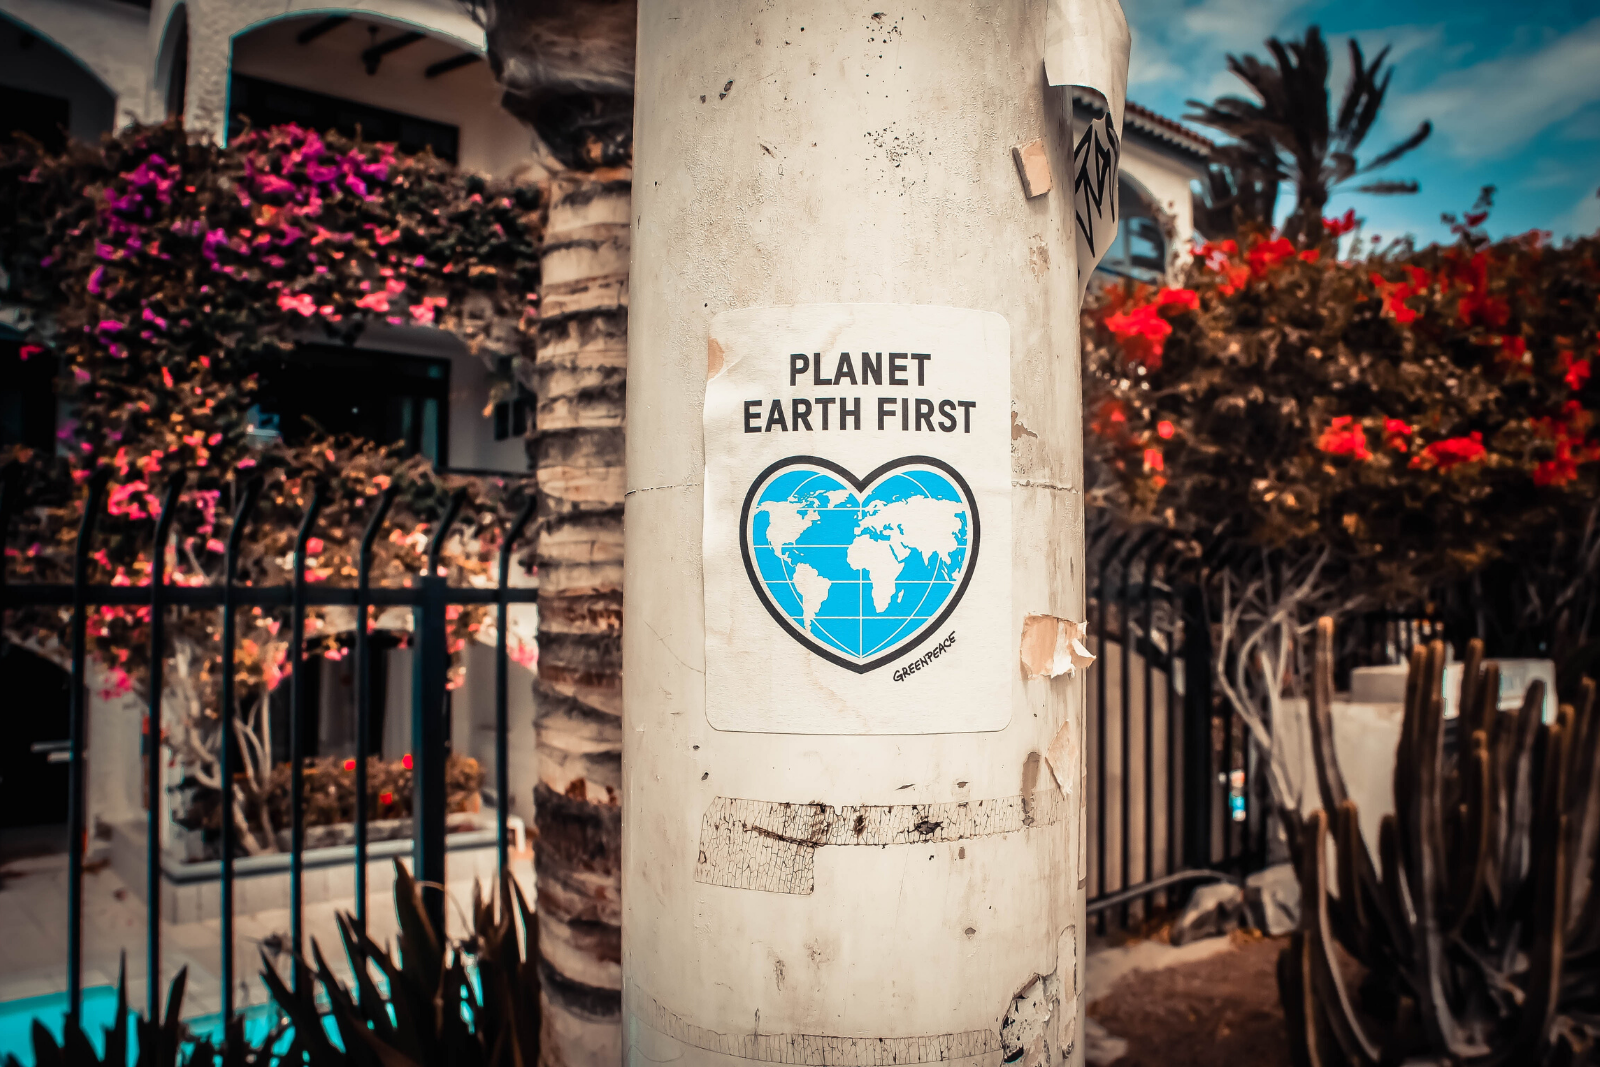 Planet Earth First Poster | 18 Popular Snack Foods That Are Actually Vegan Approved